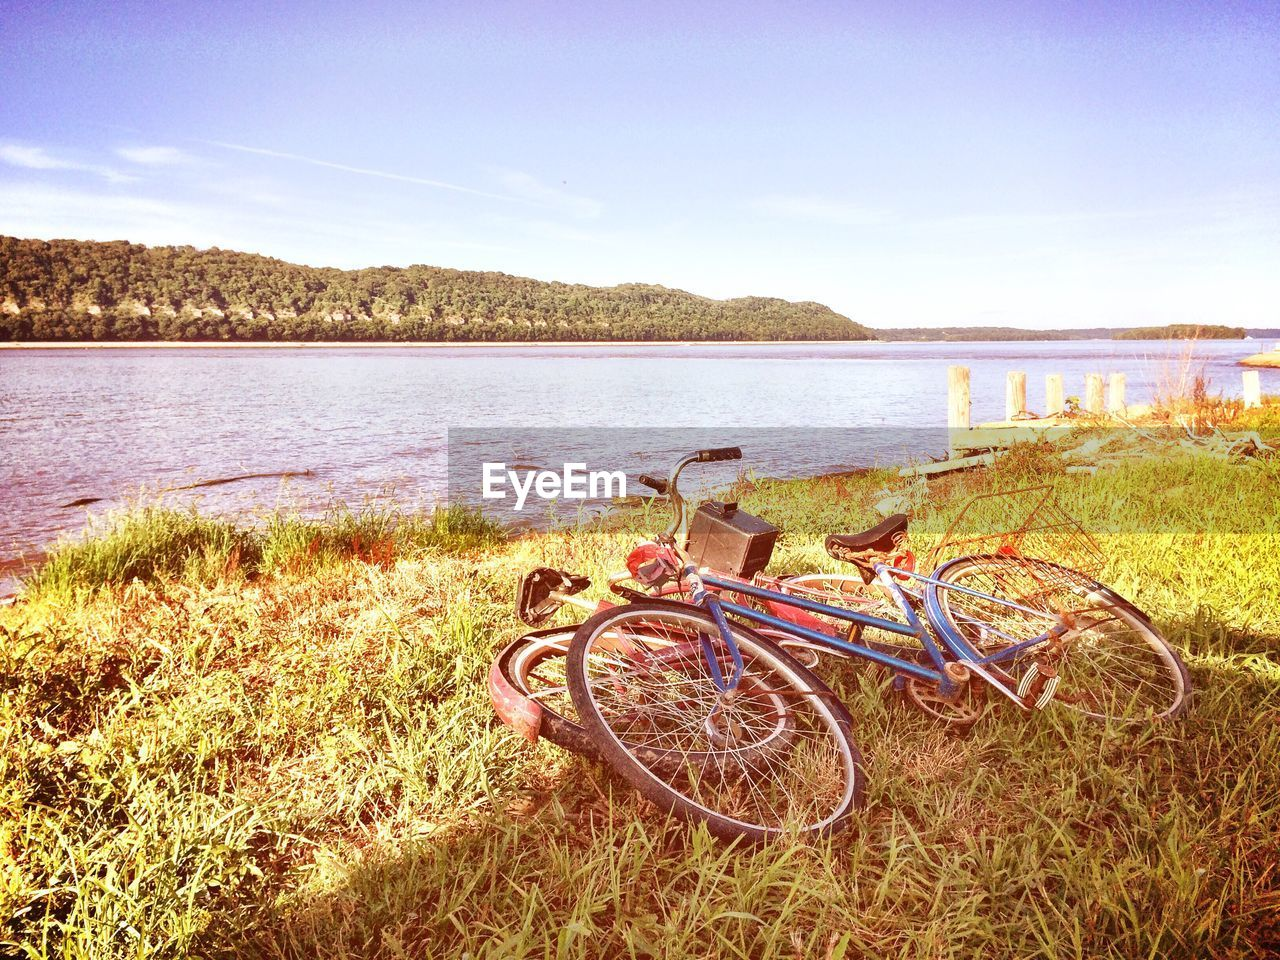 bicycle, transportation, grass, no people, mode of transport, water, outdoors, nature, lake, day, tranquil scene, land vehicle, tranquility, stationary, field, scenics, sky, beauty in nature